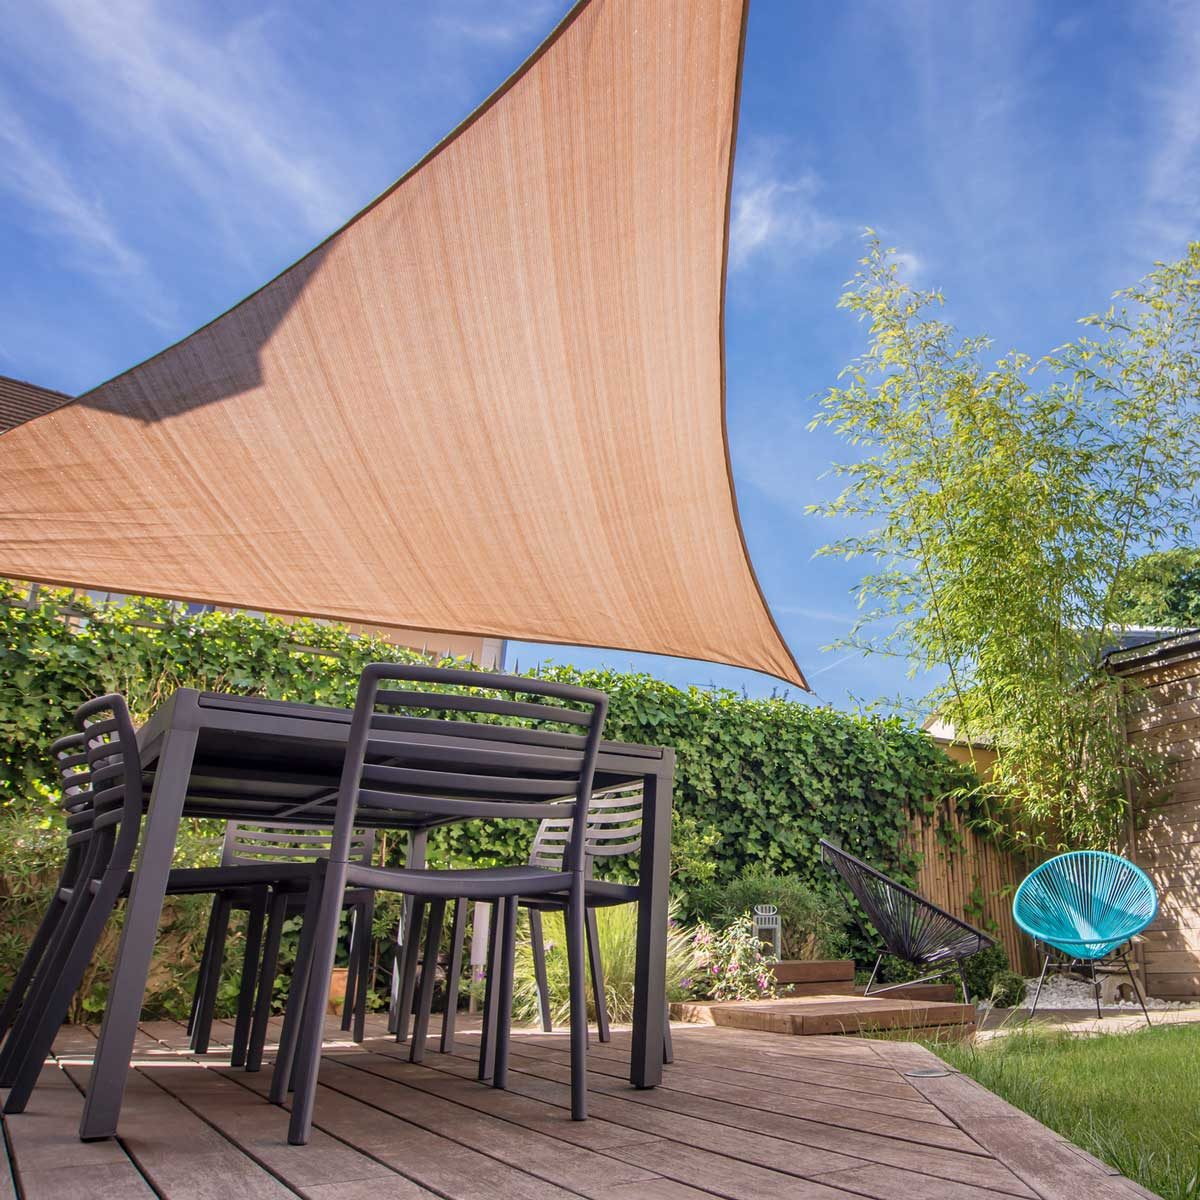 Shade sail over a patio table